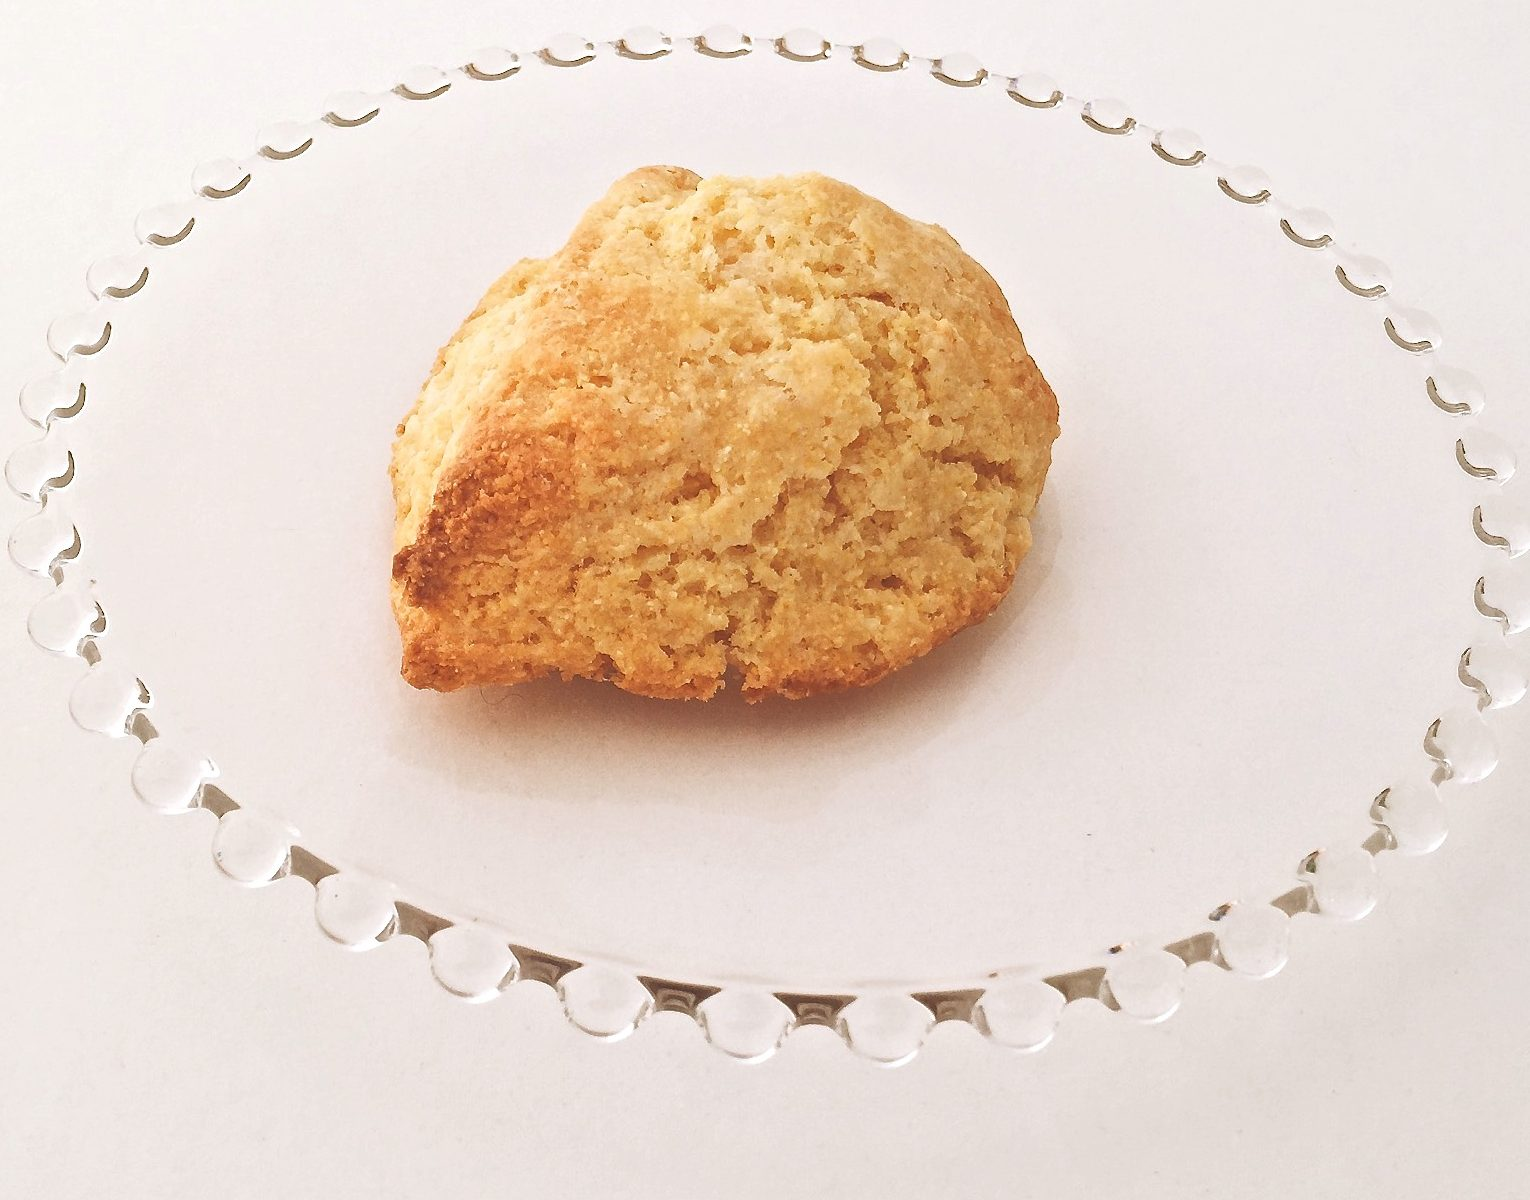 Cornmeal Scone made from Cornmeal Scone Mix sitting on glass plate